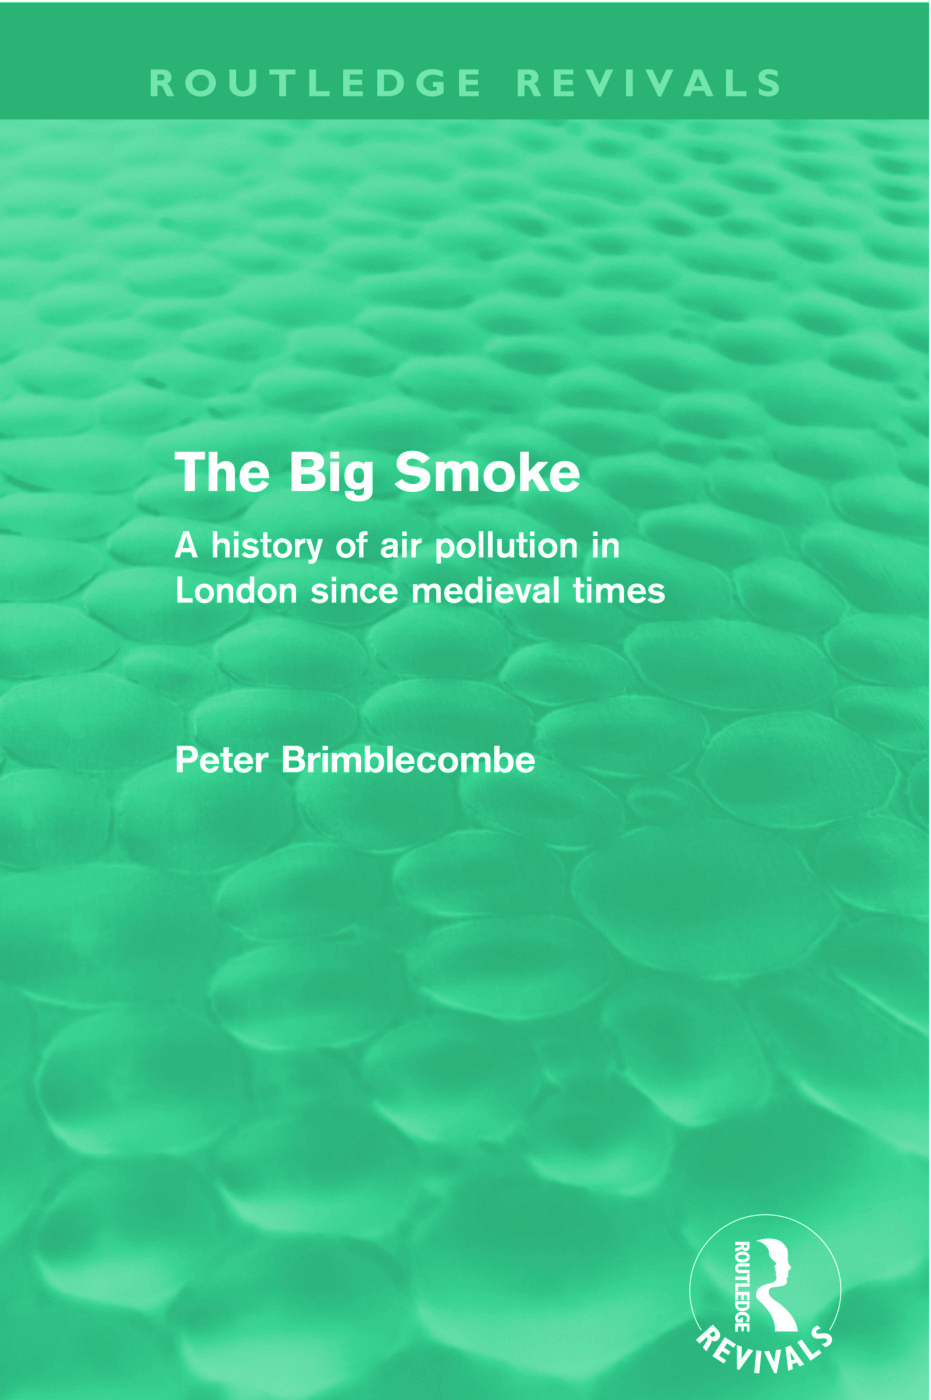 The Big Smoke (Routledge Revivals): A History of Air Pollution in London since Medieval Times (Paperback) book cover